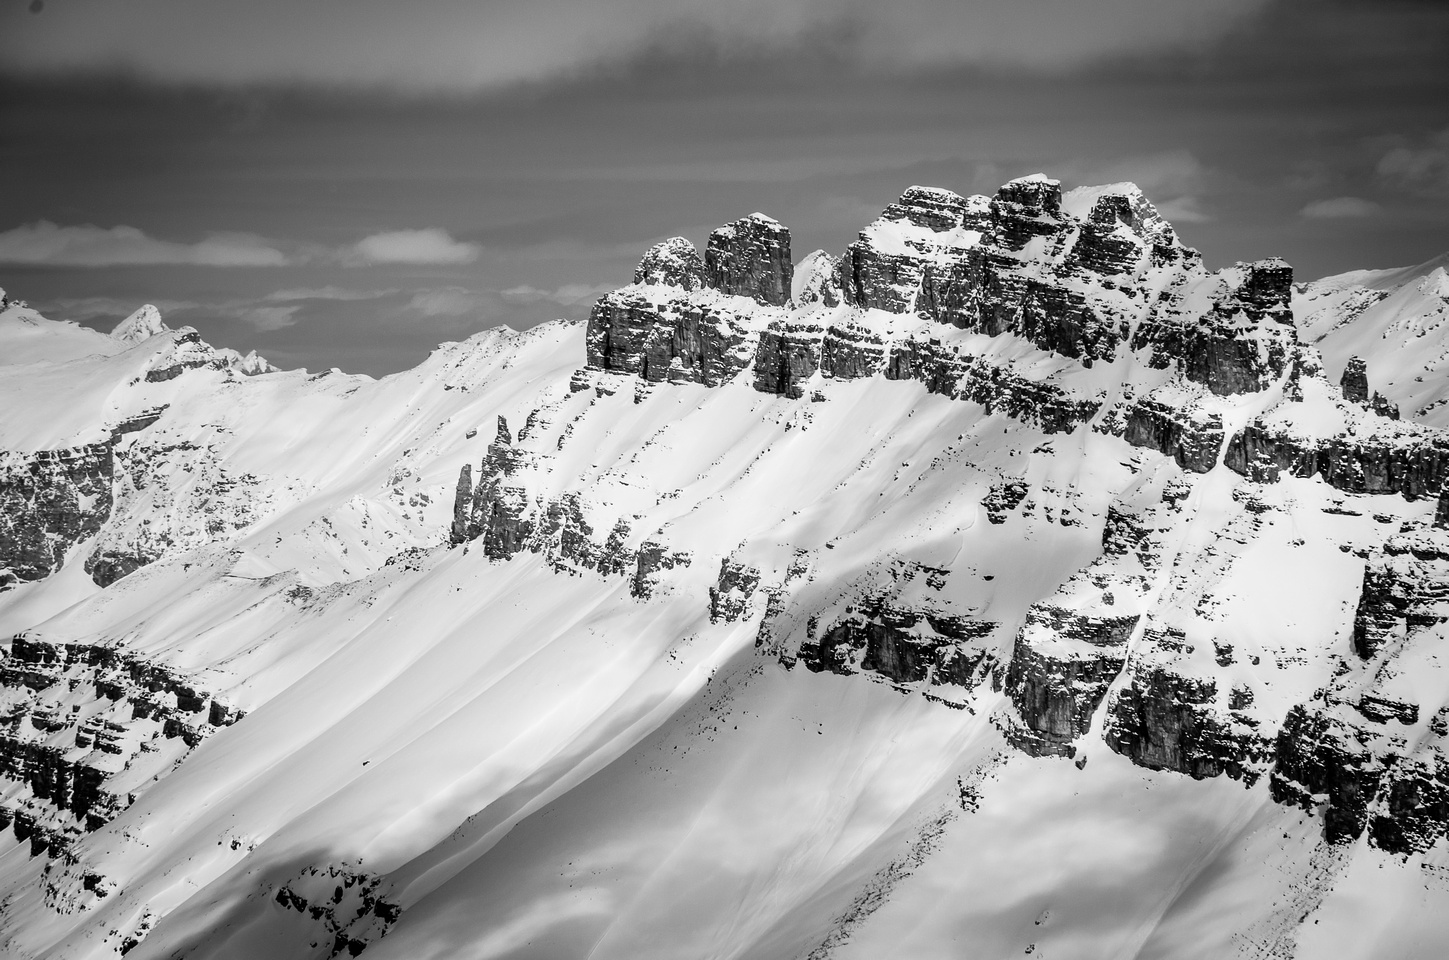 Dolomite Peak is an impressive looking mountain which I climbed after work with Sonny Bou in 2004.